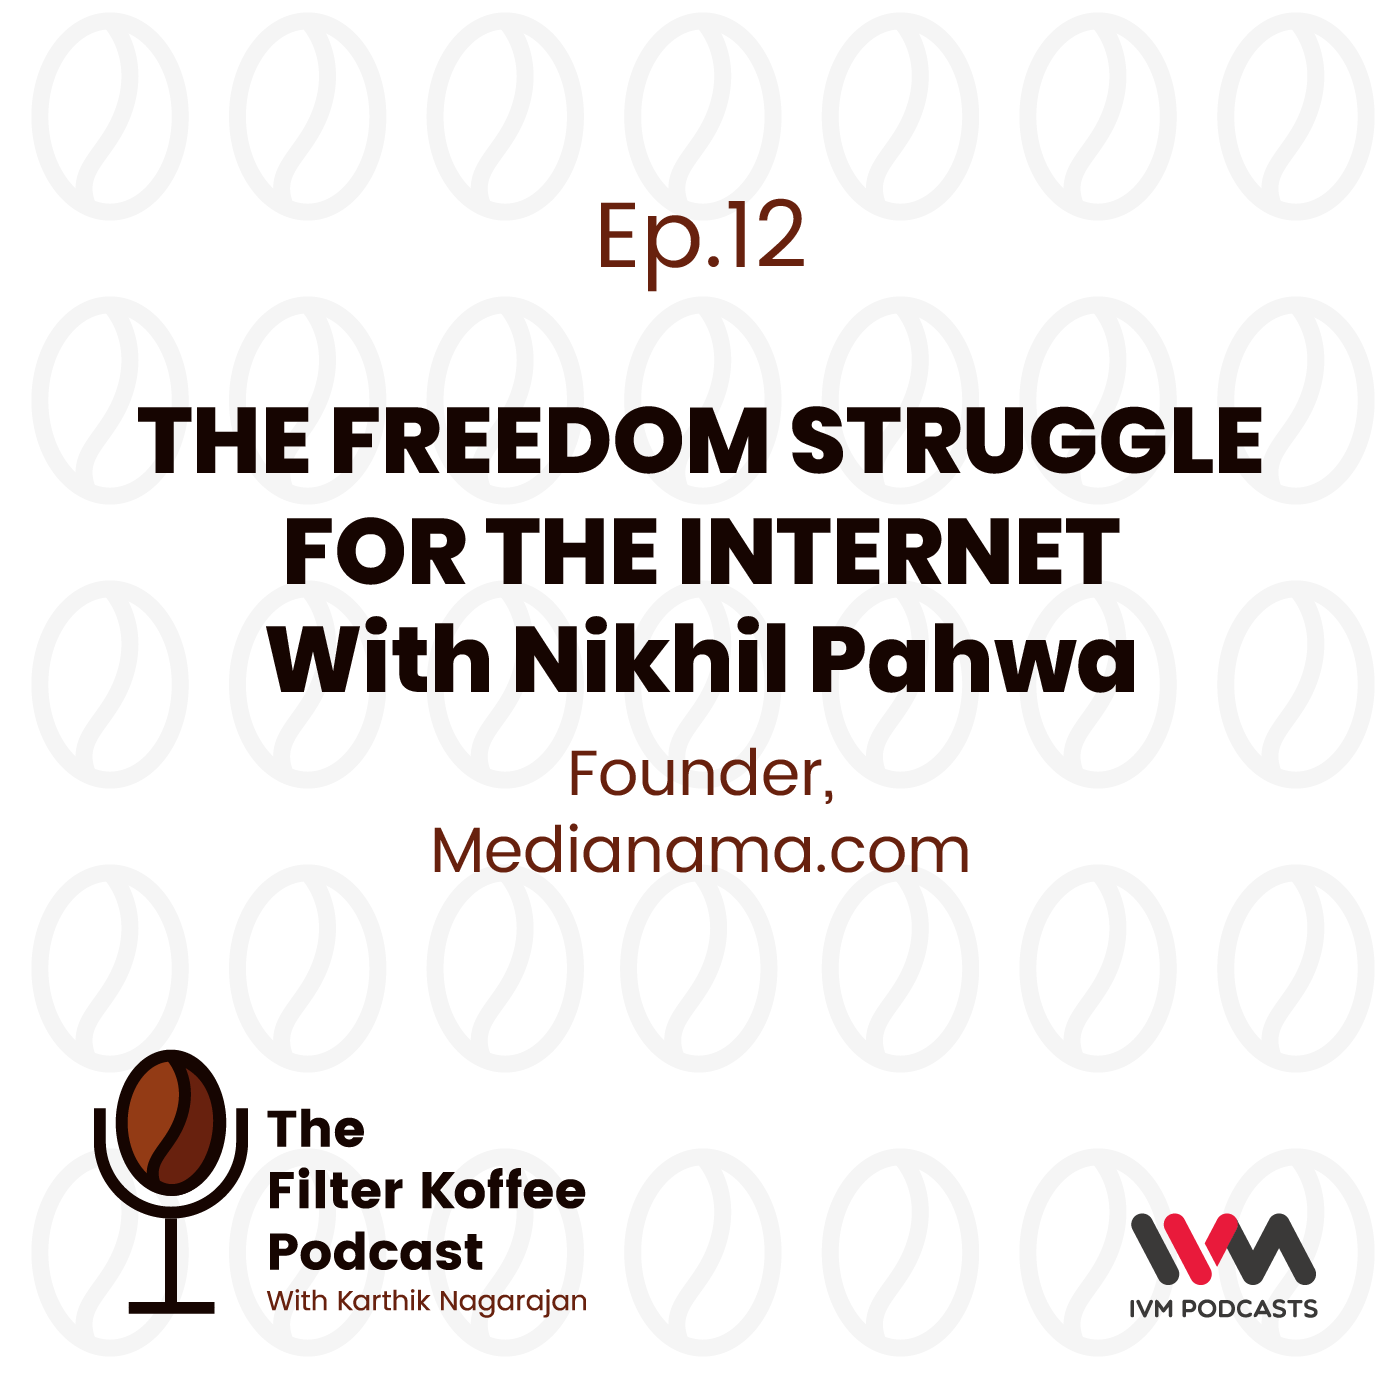 Ep. 12: The Freedom Struggle For The Internet with Nikhil Pahwa